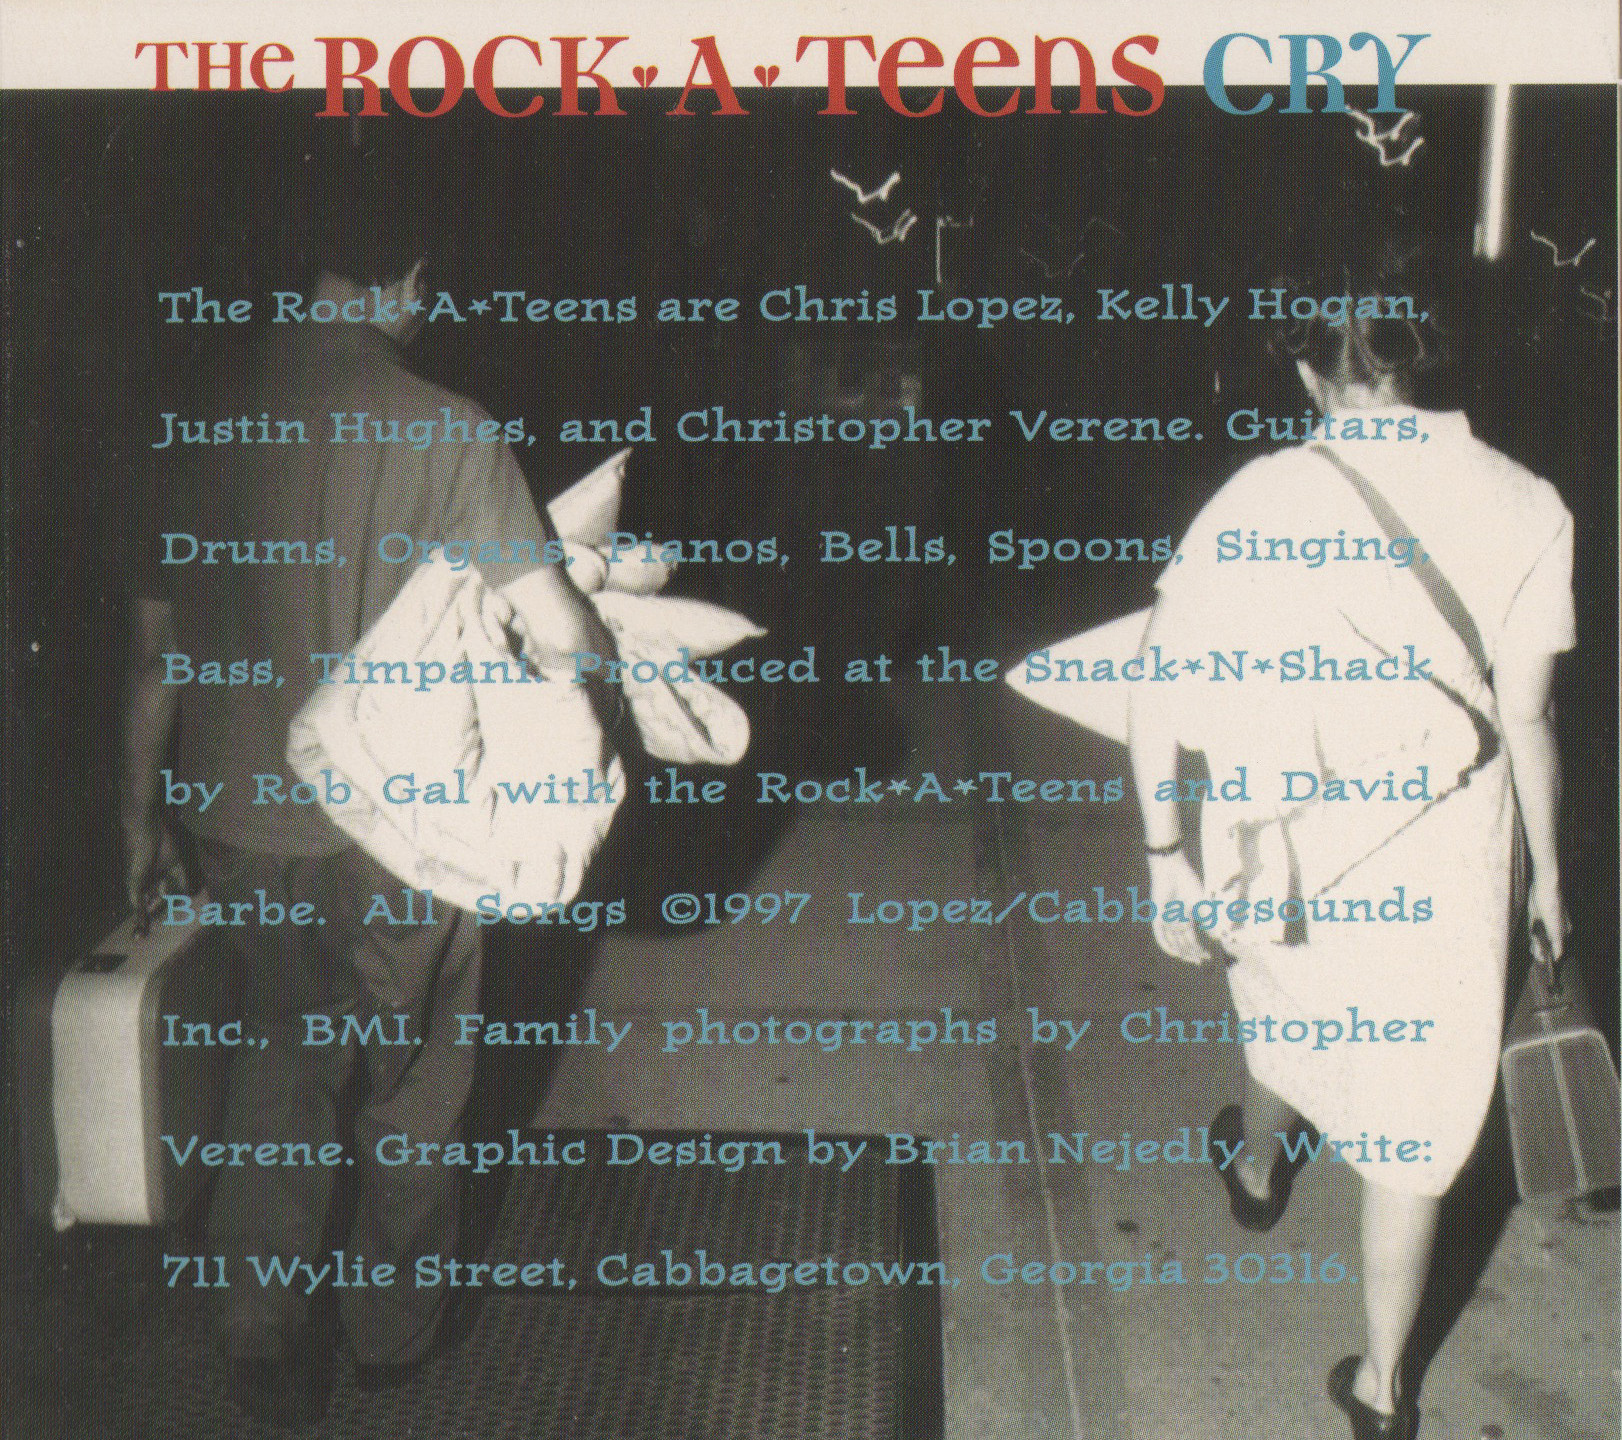 Interior photo of Chris Lopez and Kelly Hogan from The Rock*A*Teens - Cry (Daemon Records, 1997)